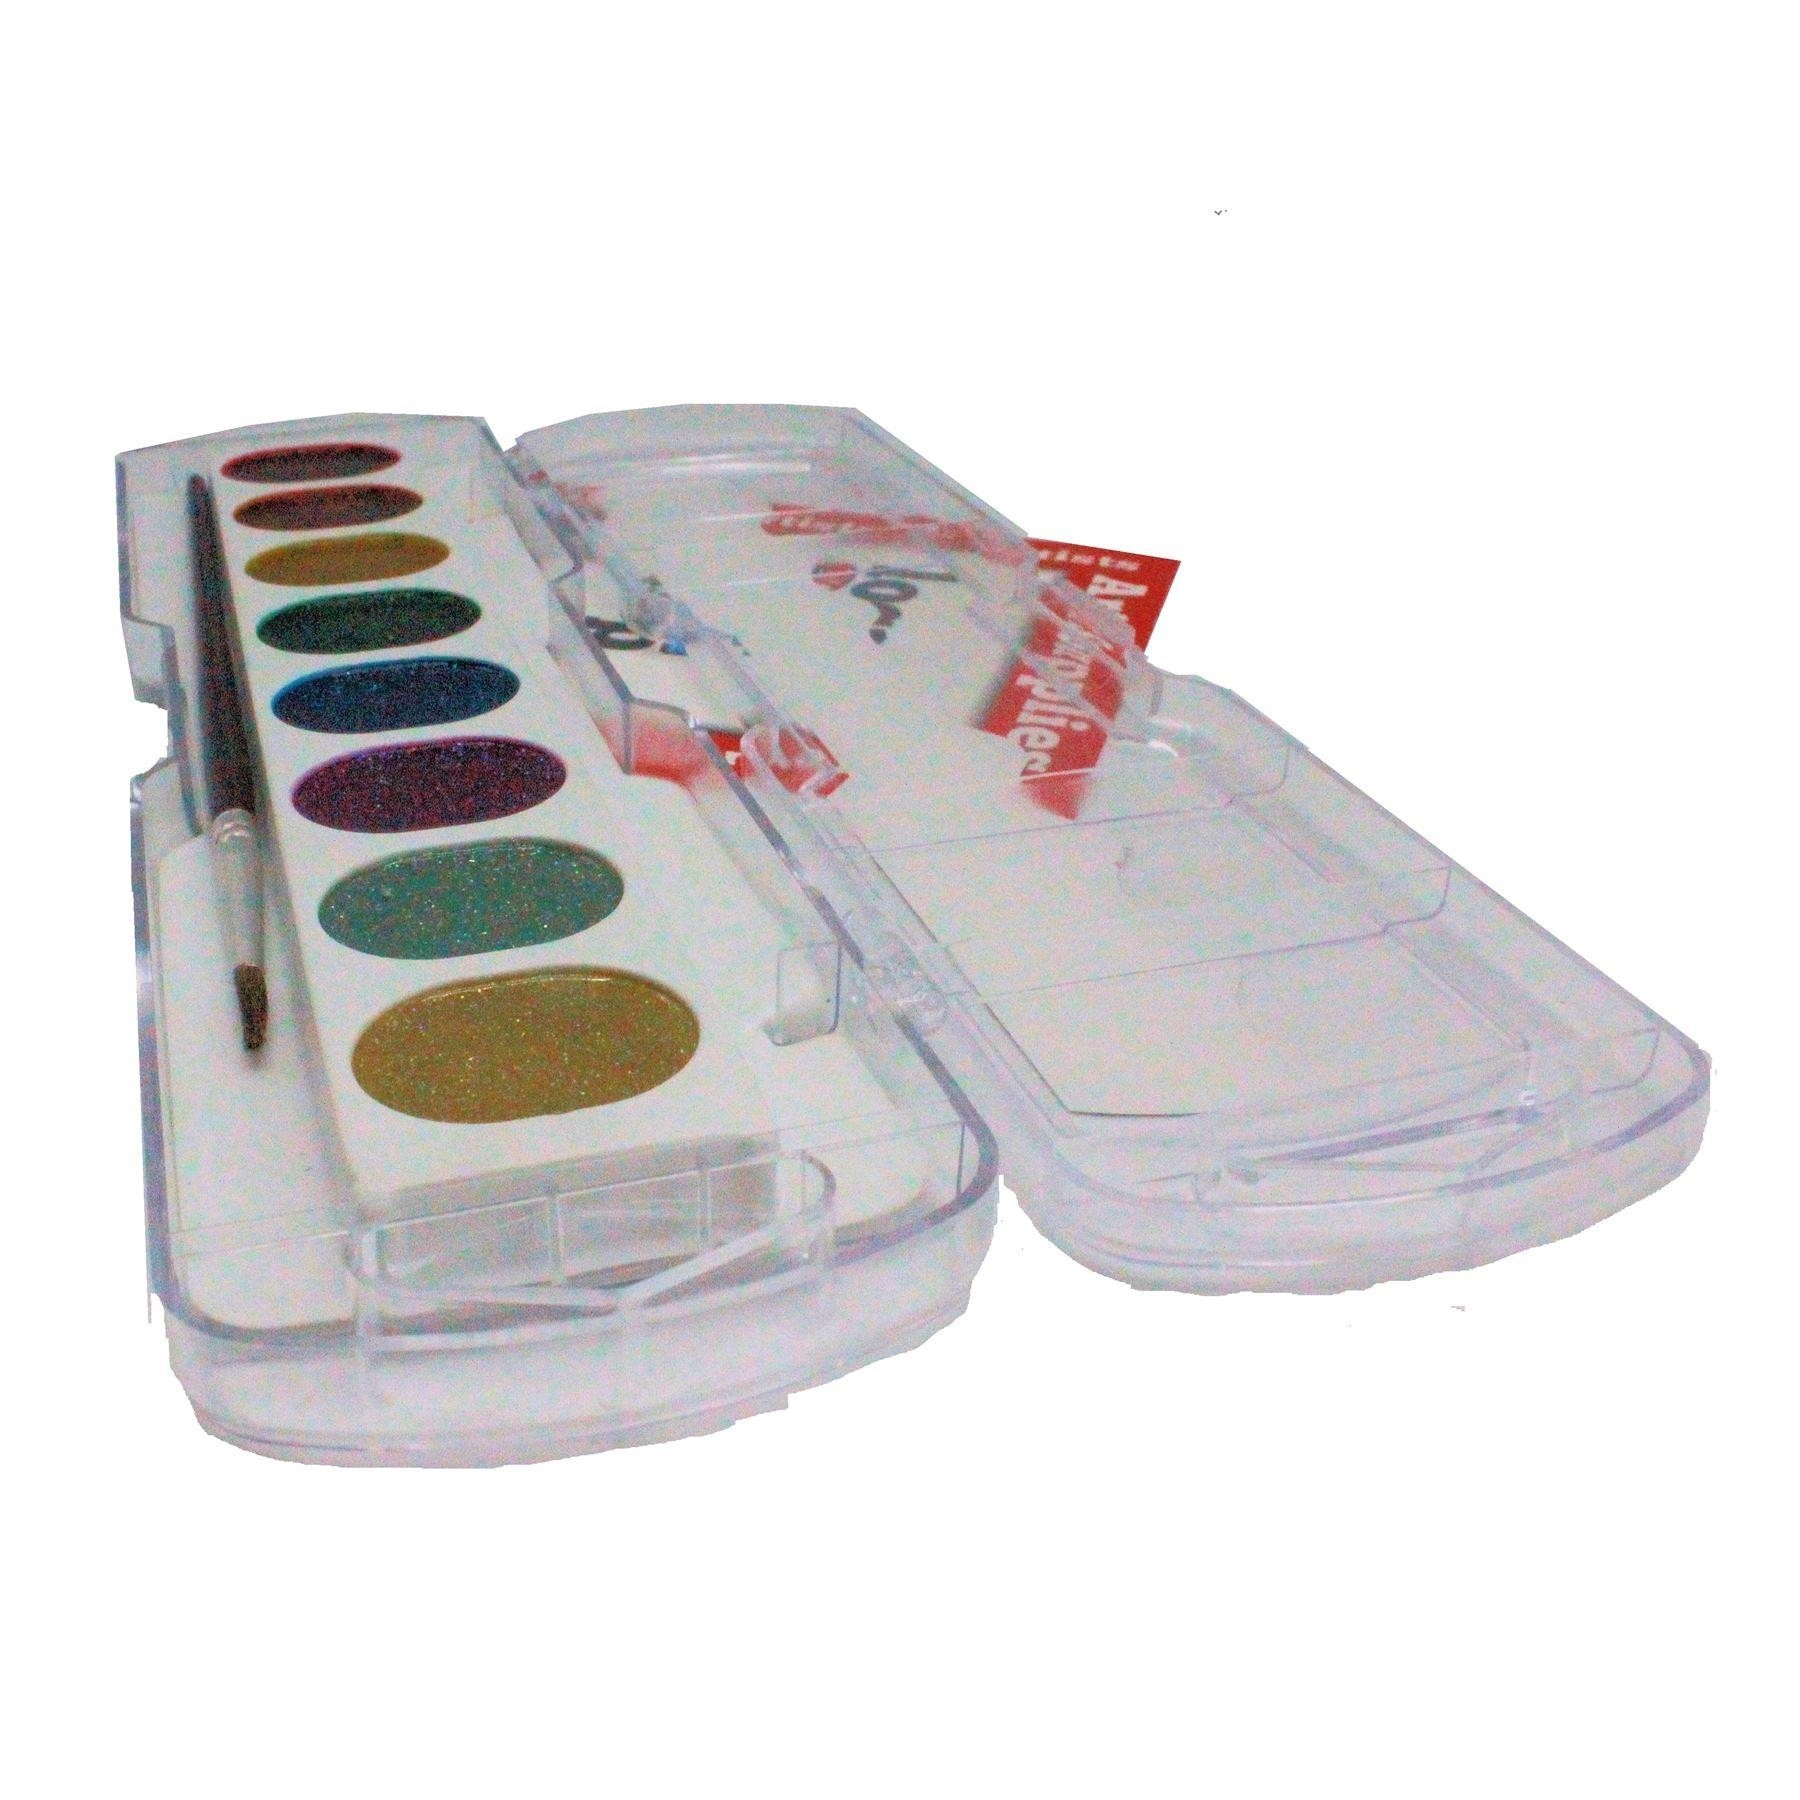 Fila Giotto 8 Aquerelli glitter watercolour block plus paint brush